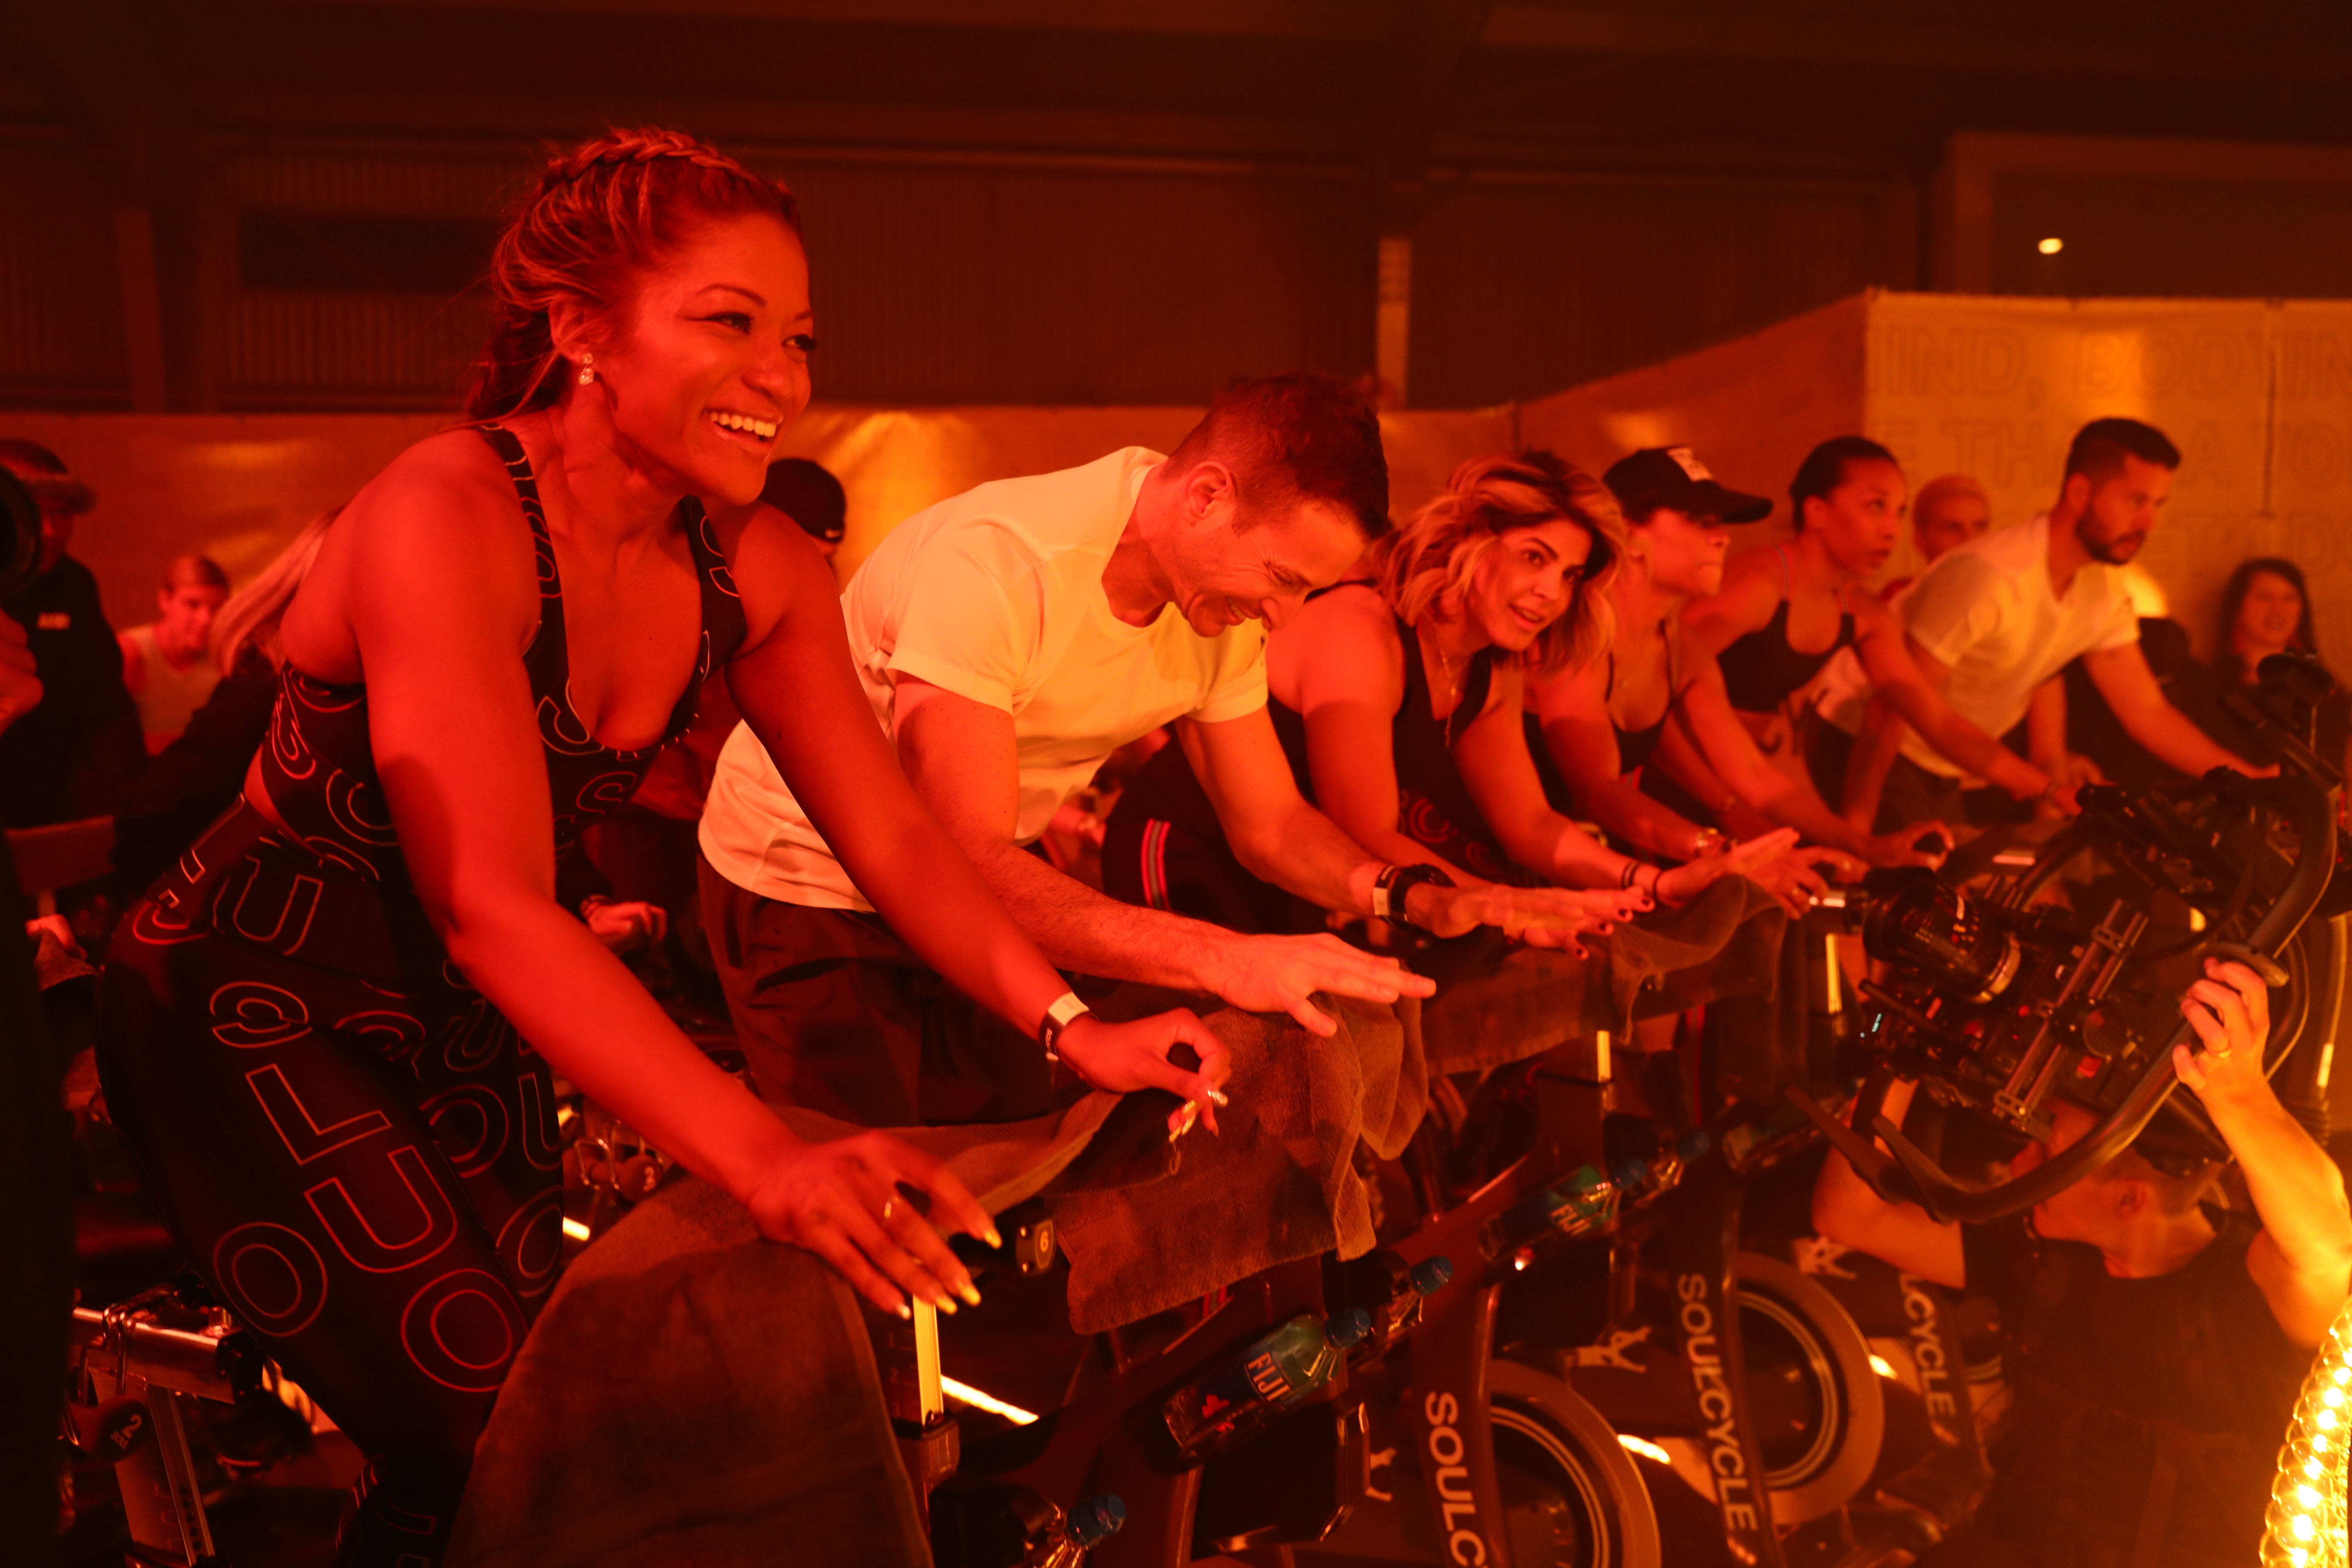 LOS ANGELES, CALIFORNIA - MARCH 22: Ryders enjoy the performance at Sound by SoulCycle at Milk Studios on March 22, 2019 in Los Angeles, California. (Photo by Joe Scarnici/Getty Images for SoulCycle)